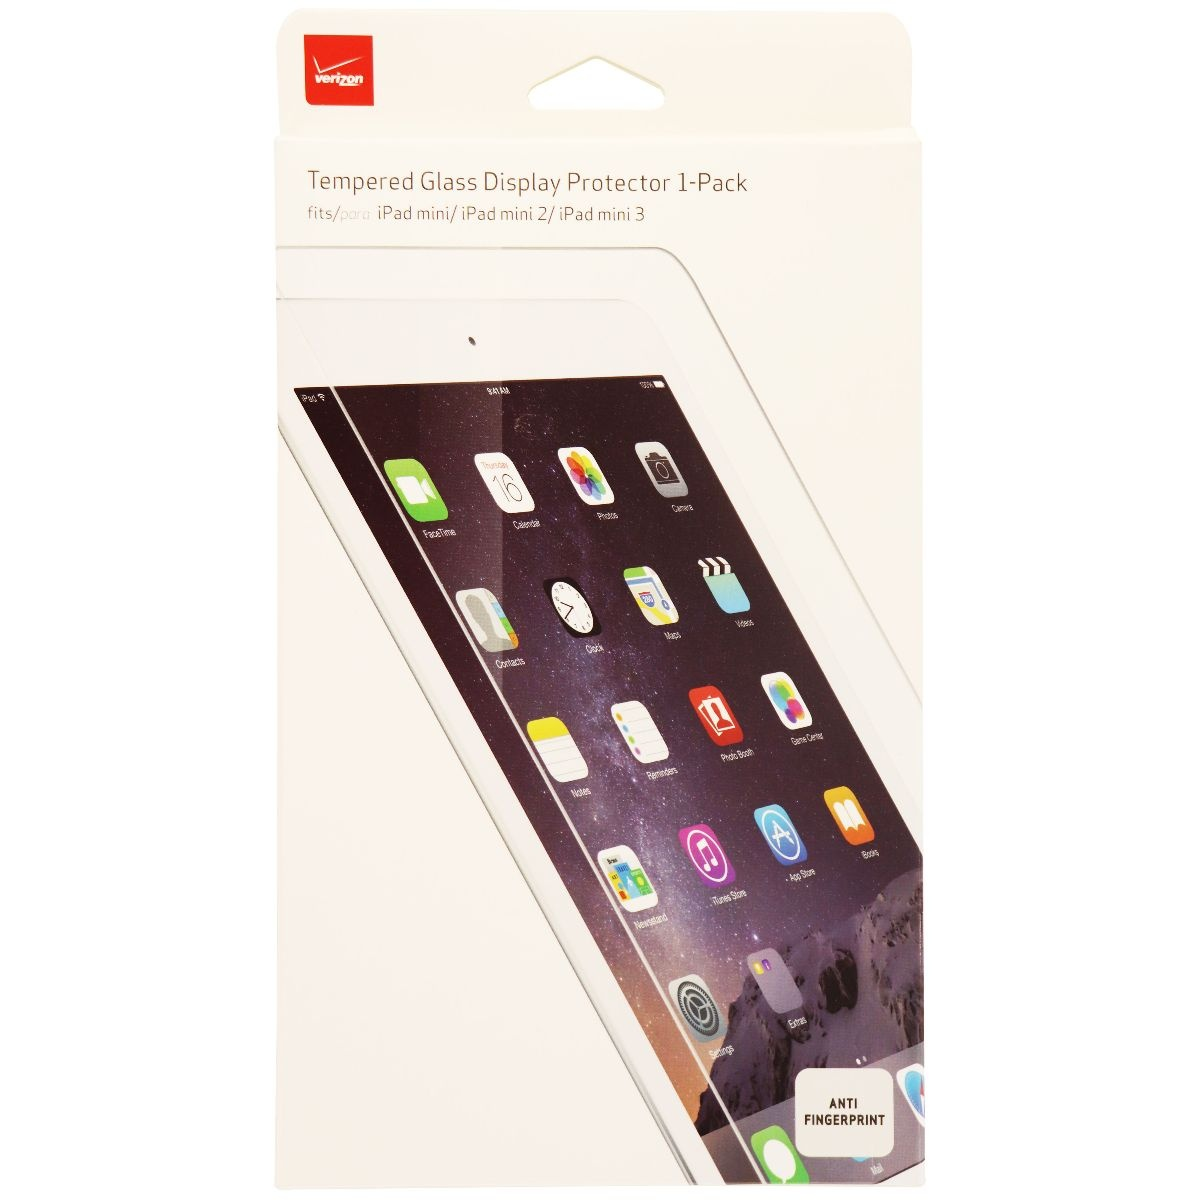 Verizon Tempered Glass Display Protector 1 Pack for iPad mini 1 / 2 / 3 - Clear